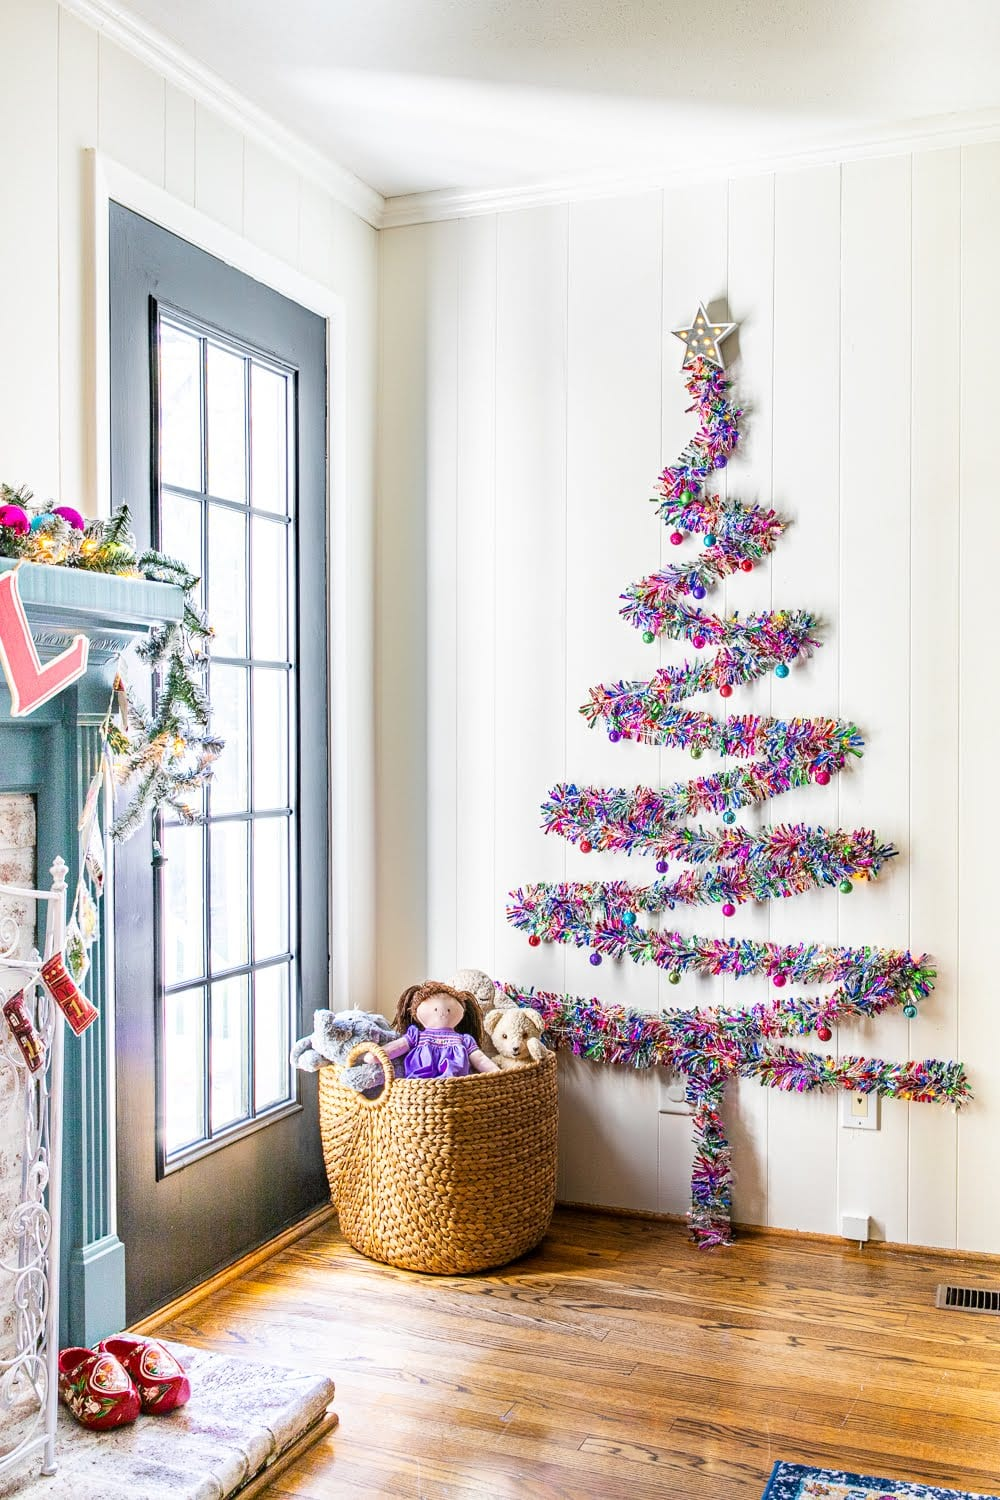 DIY wall Christmas tree with just Command hooks, garland, fairy lights, and shatterproof ornaments